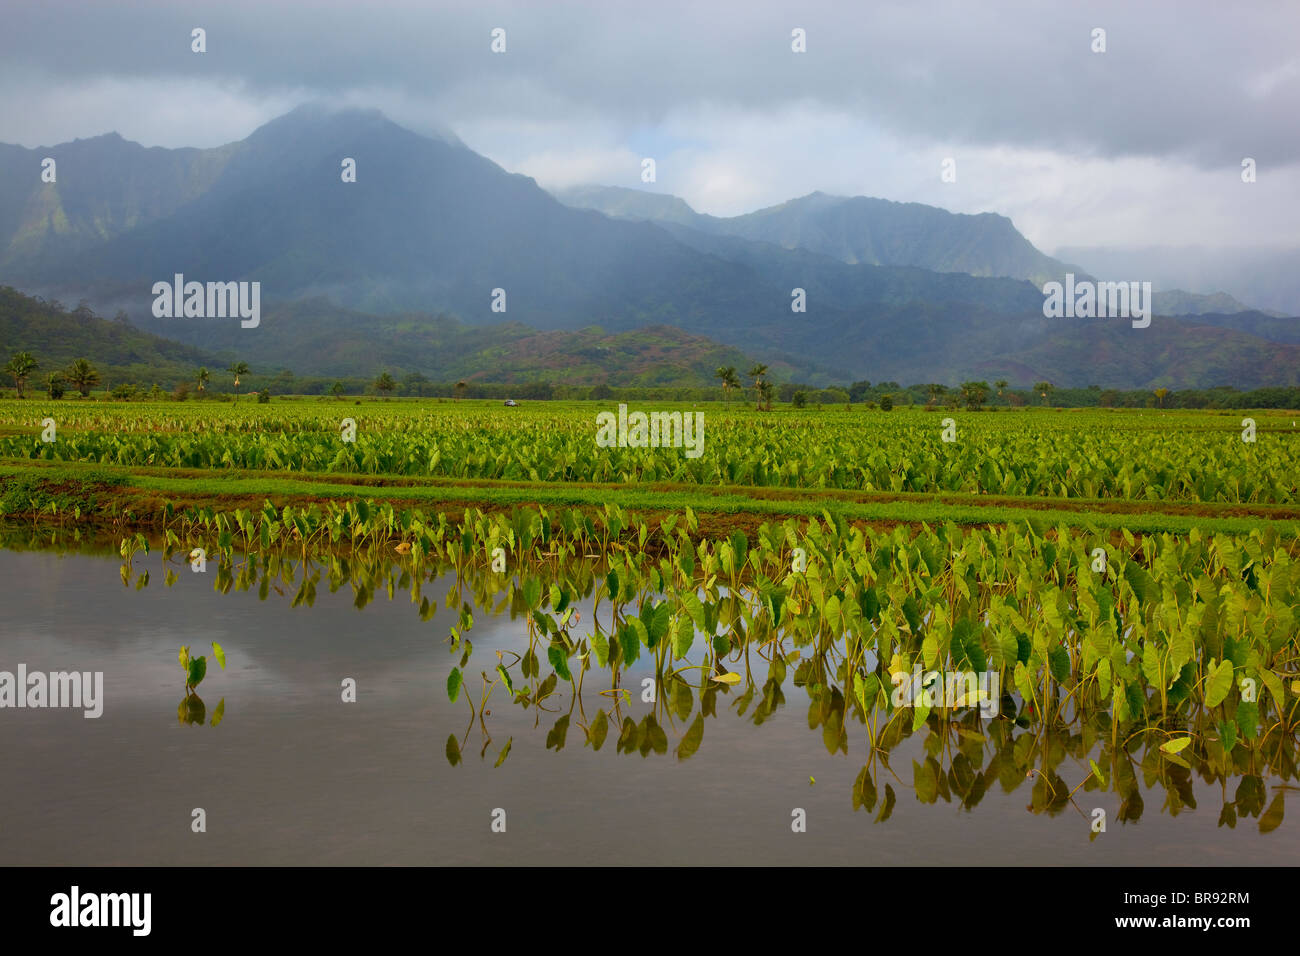 Kauai, HI: Hanalei Valley taro fields in Hanalei National Wildlife Refuge - Stock Image